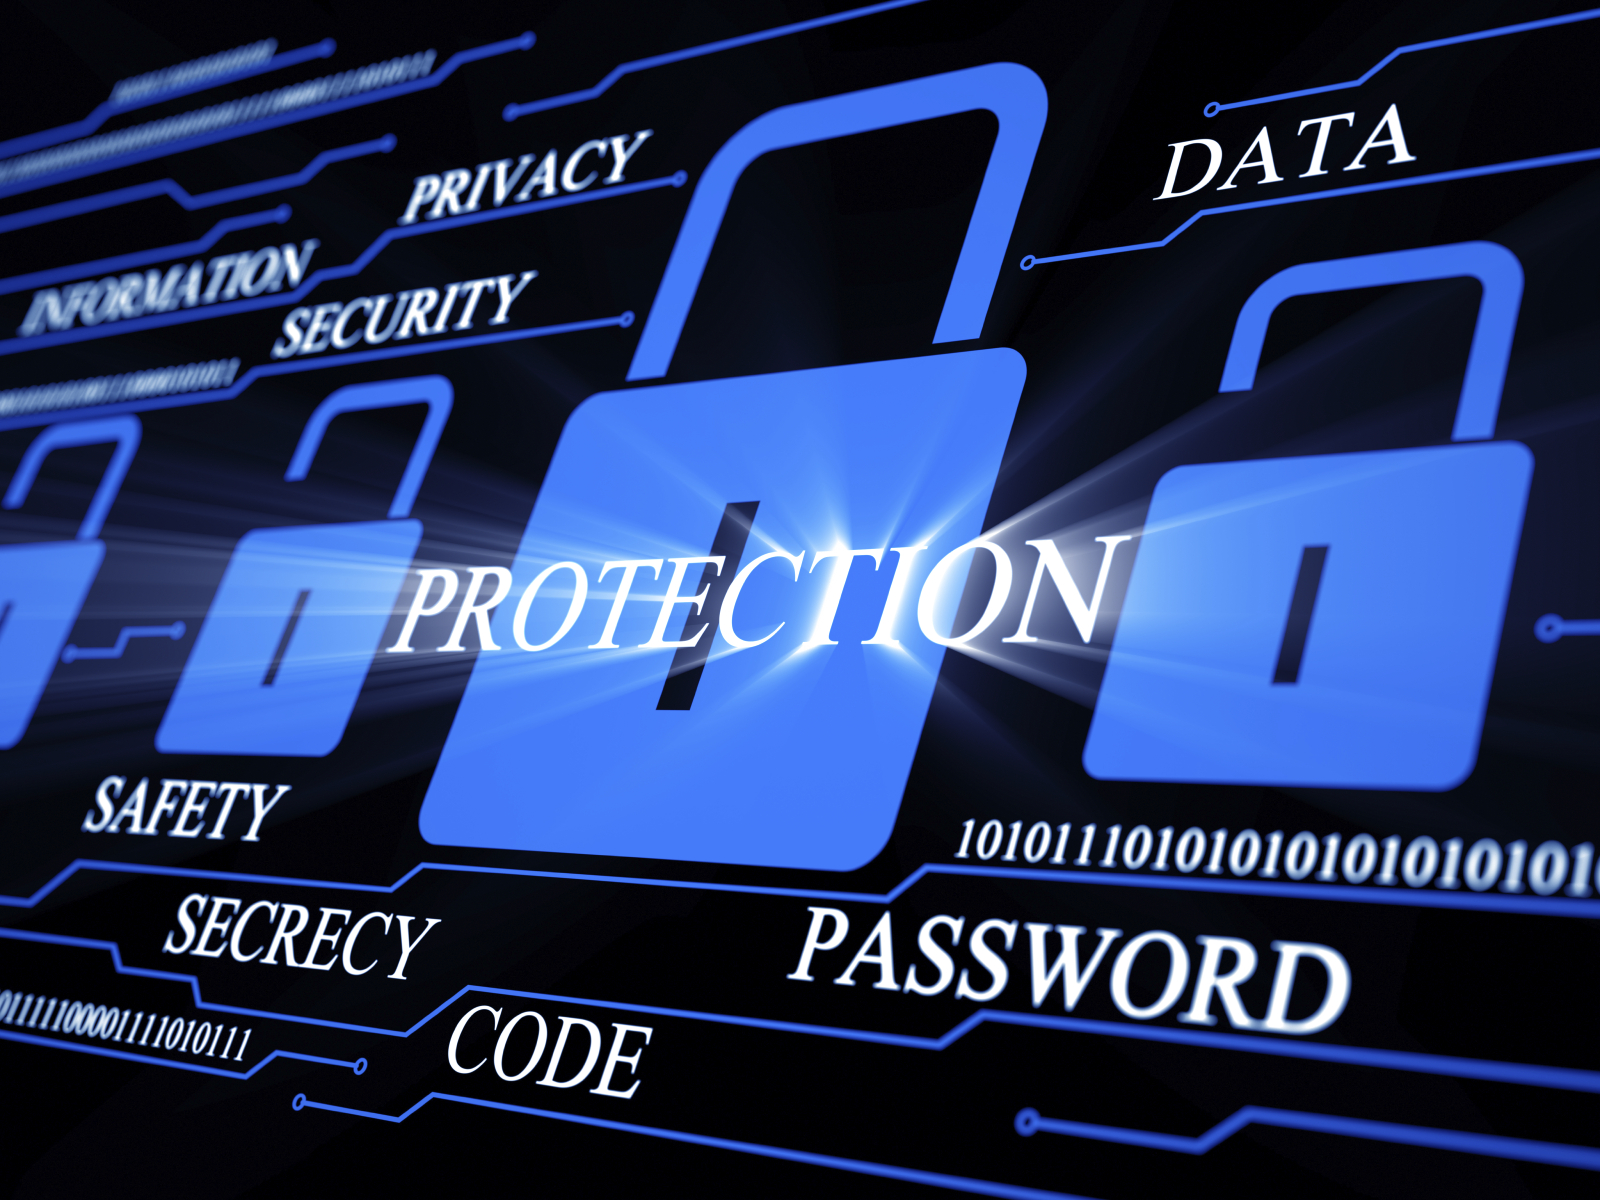 Data Protection Security